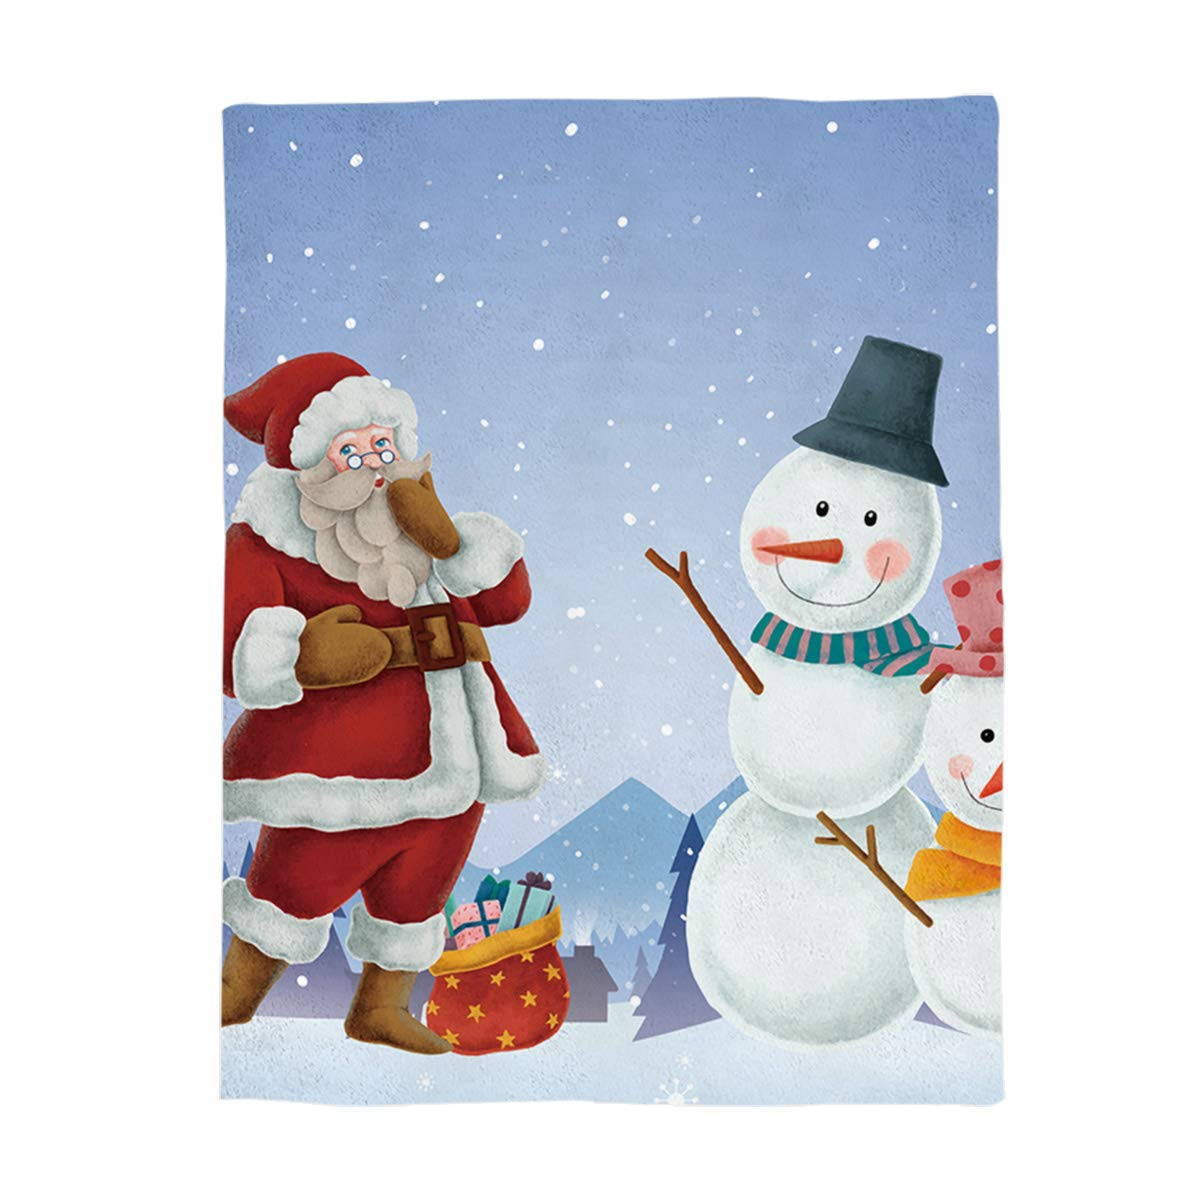 Christmas 2476lgry8372 King Size 60 x80  Greday Christmas Throw Blankets for Adults Kids Comfort Luxuriously Soft Throw Blanket AllSeasons Couch Blanket or Bed Throw,Full Size 50 x60